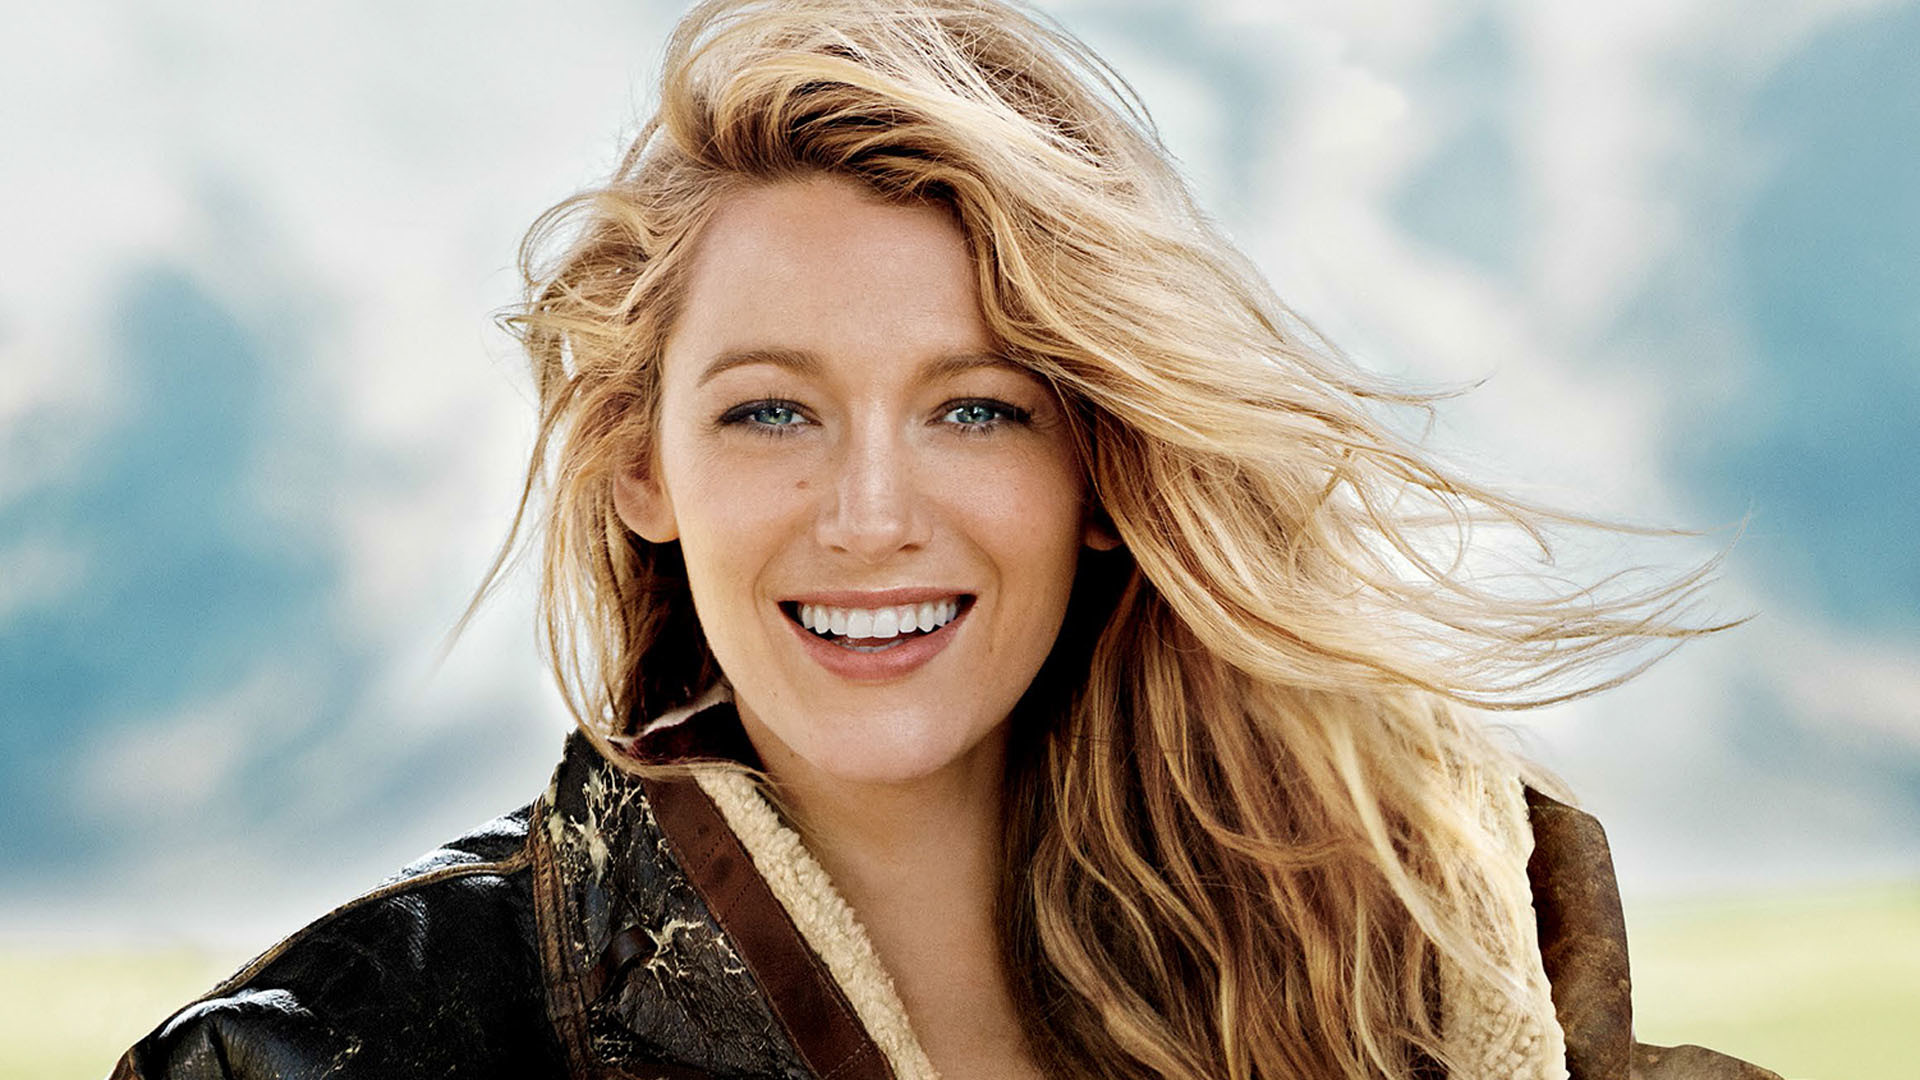 1920x1080 HD Blake Lively Wallpapers 25 HD Blake Lively Wallpapers 26